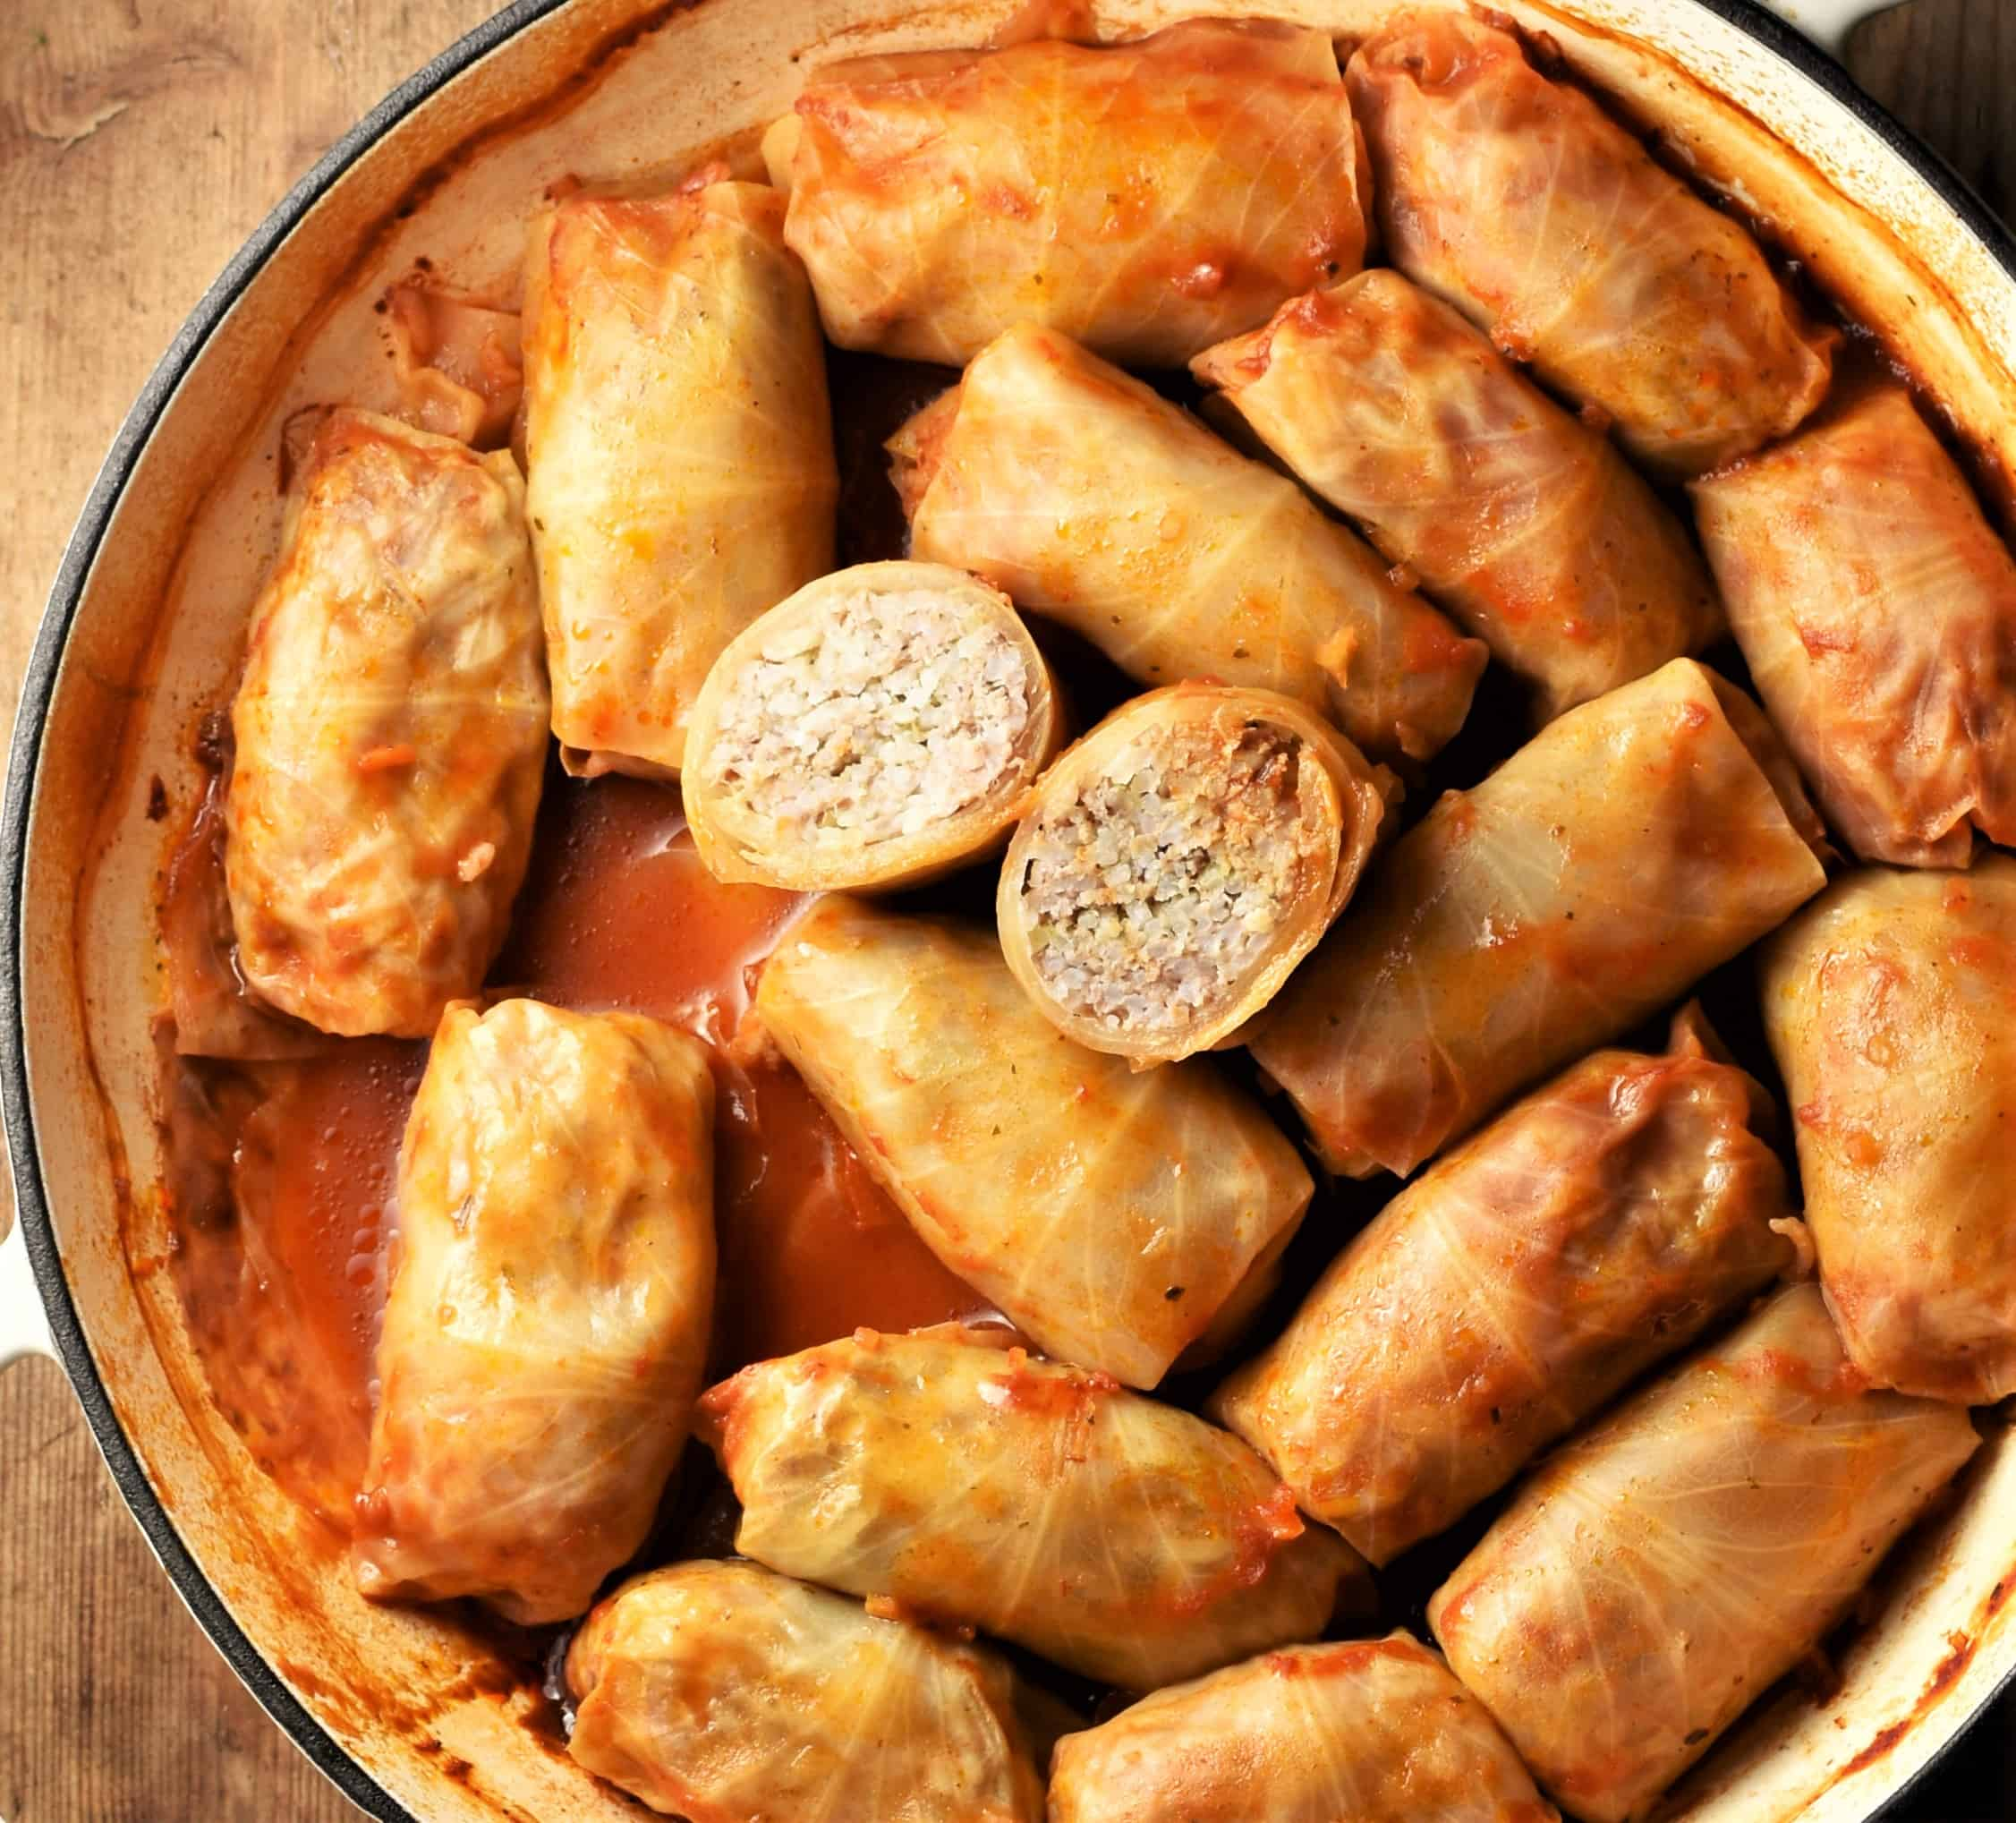 Top down view of cabbage rolls in tomato sauce in large white shallow pan.